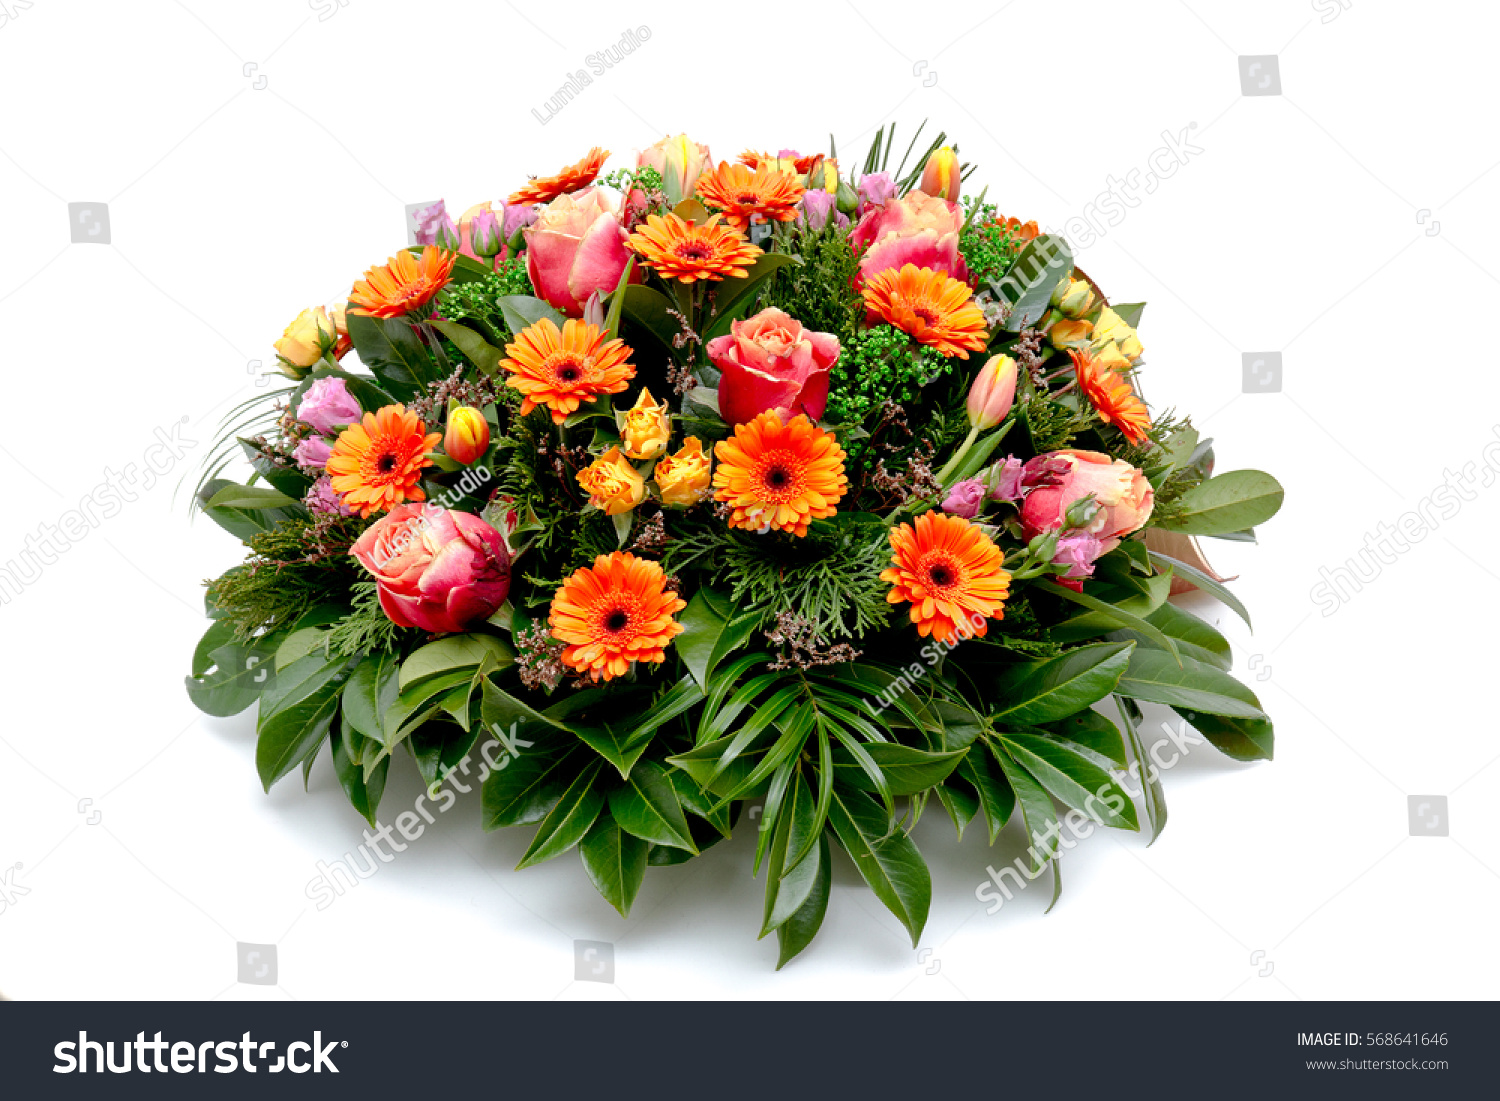 Funeral Flower Wreath Ikebana Isolated On A White Background Ez Canvas